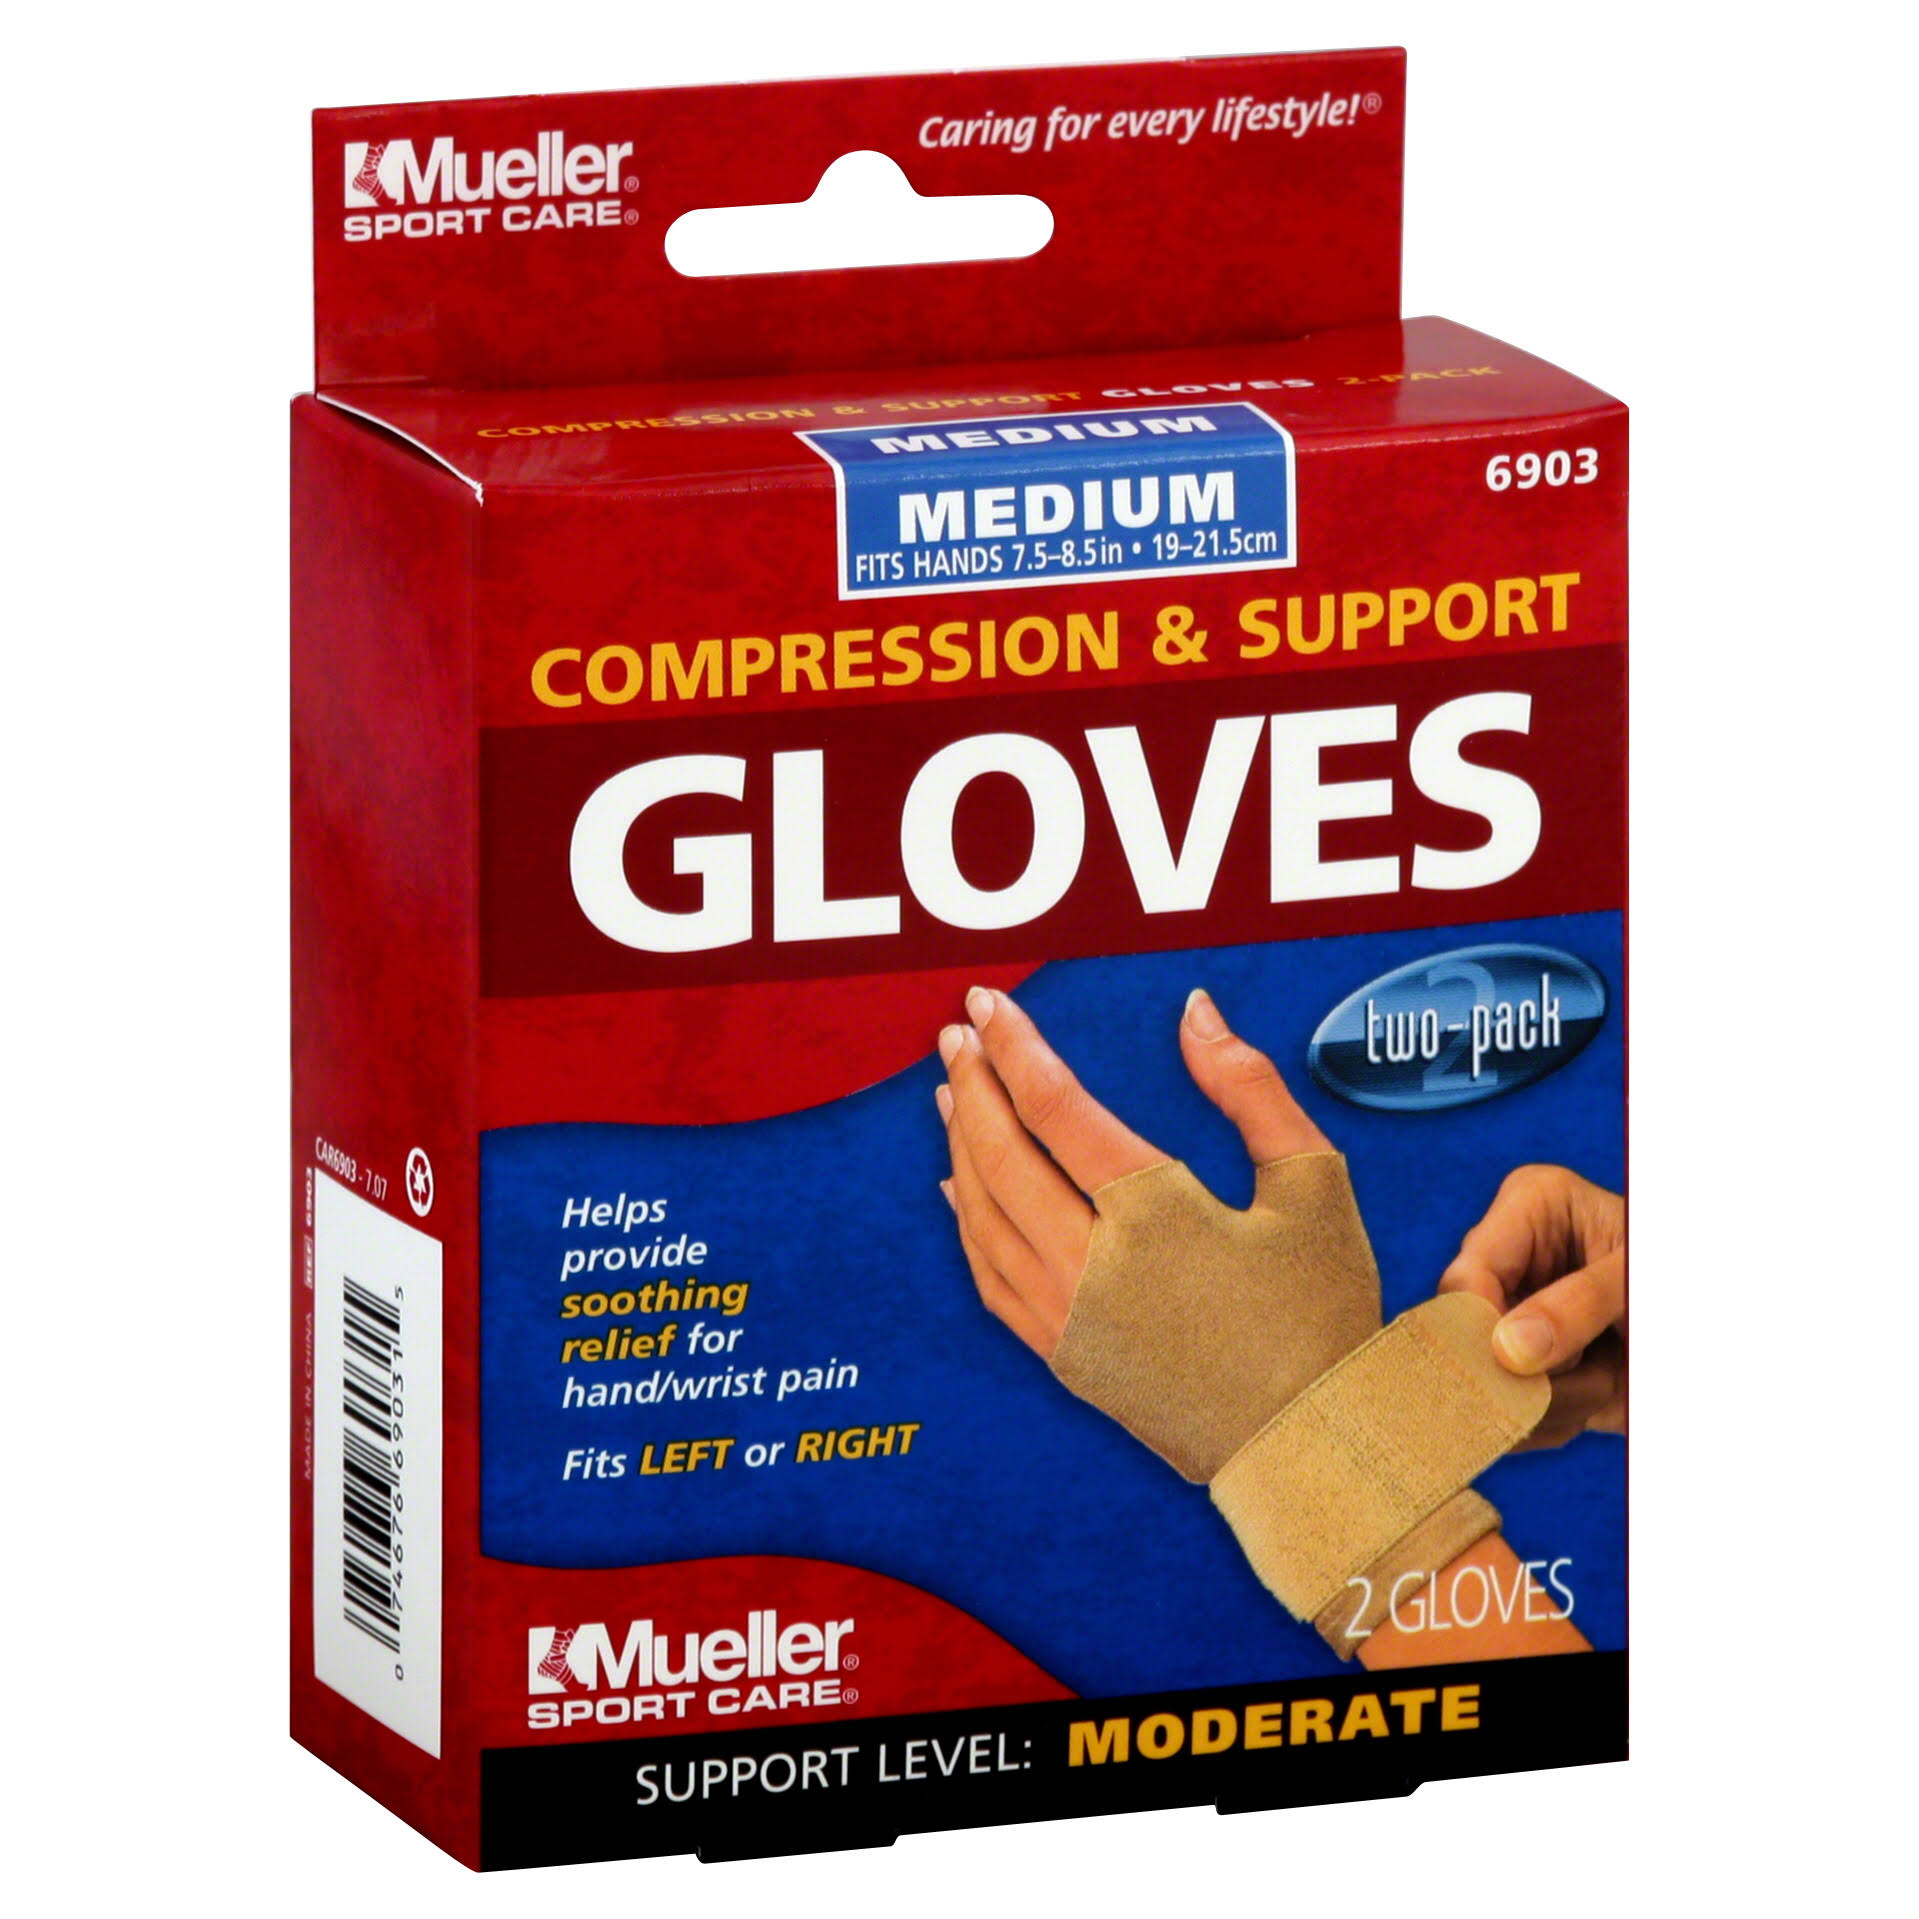 "Mueller 6903 Compression and Support Gloves - Medium (7.5-8.5""), x2"